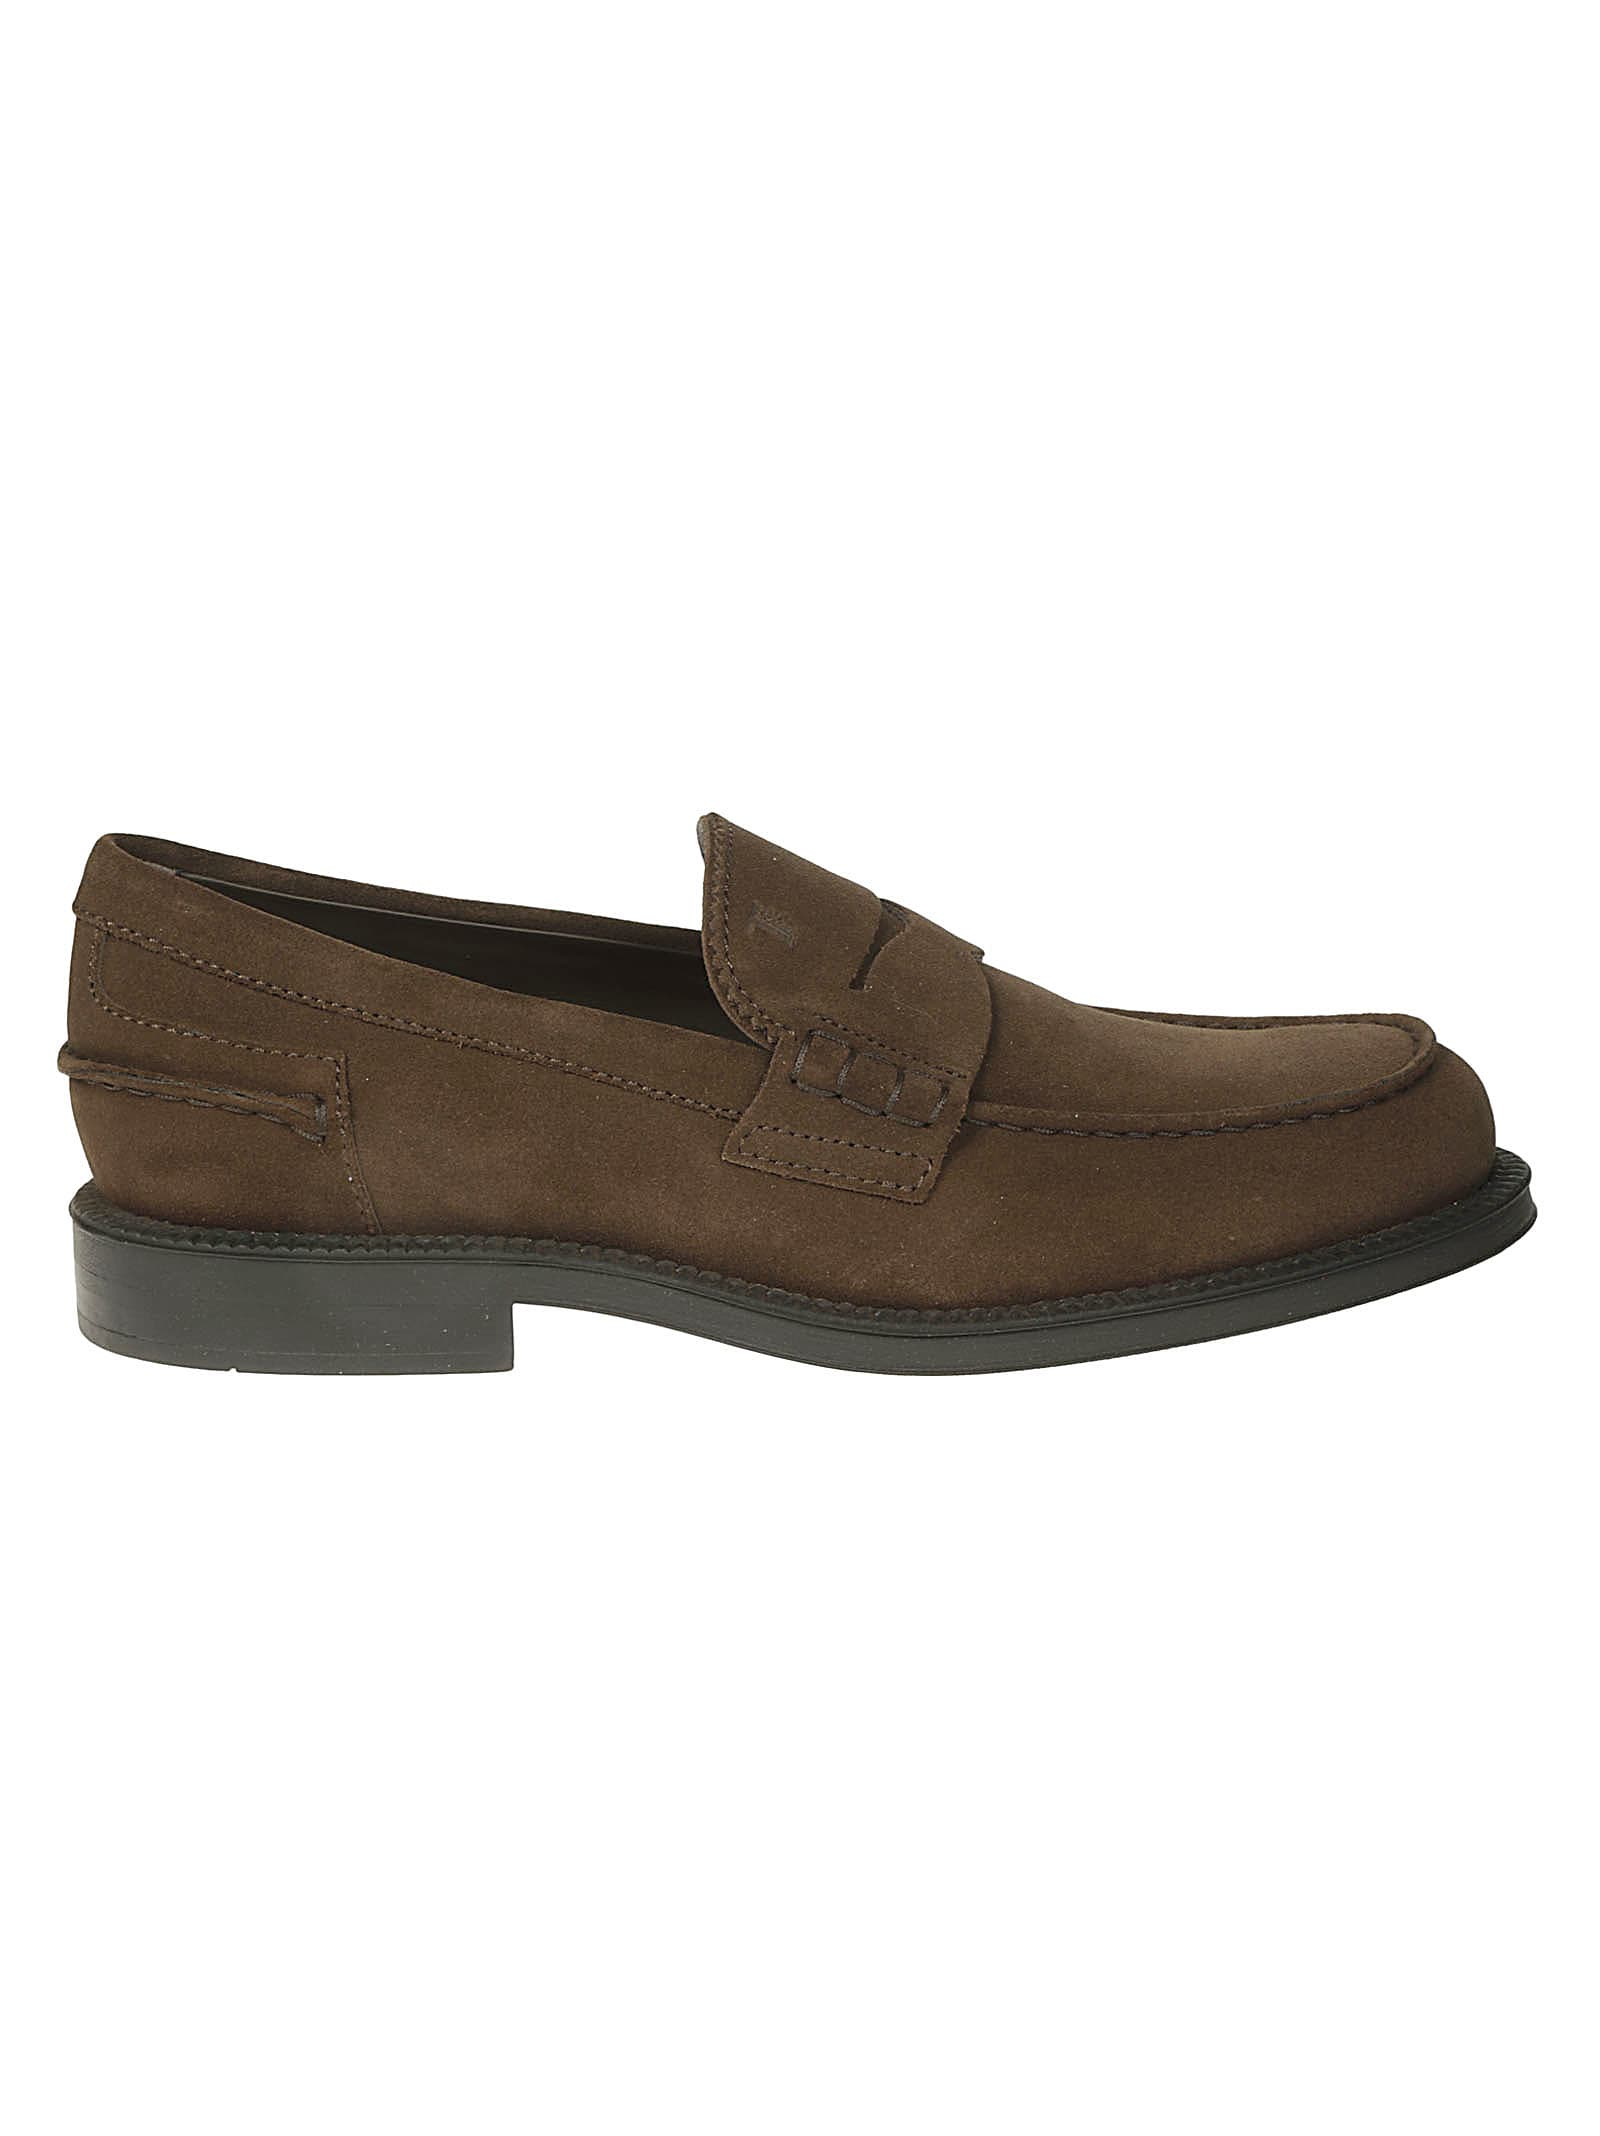 Tods Classic Loafers